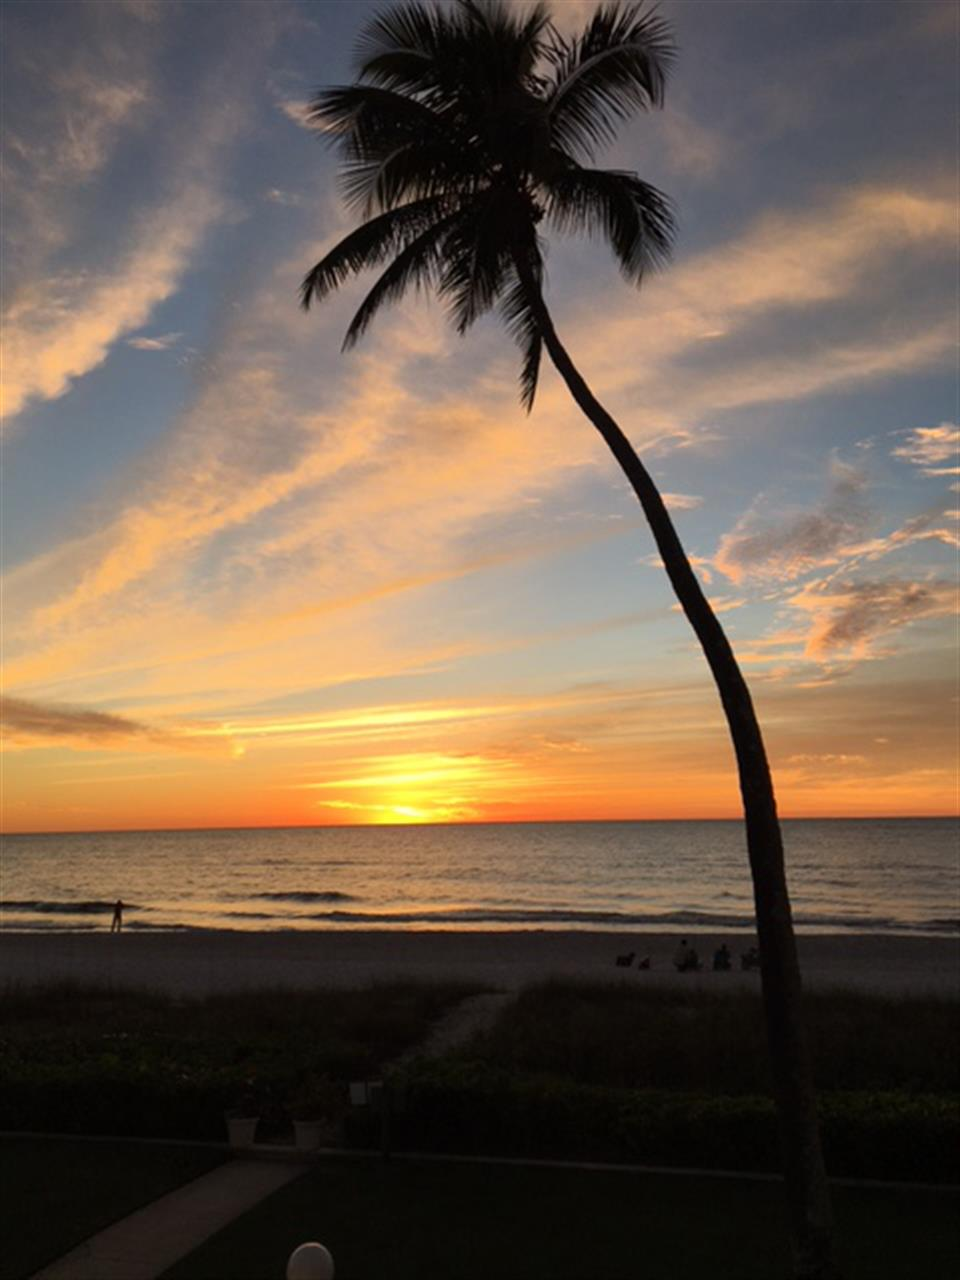 #leadingrelocal #Naples #Florida #sunset